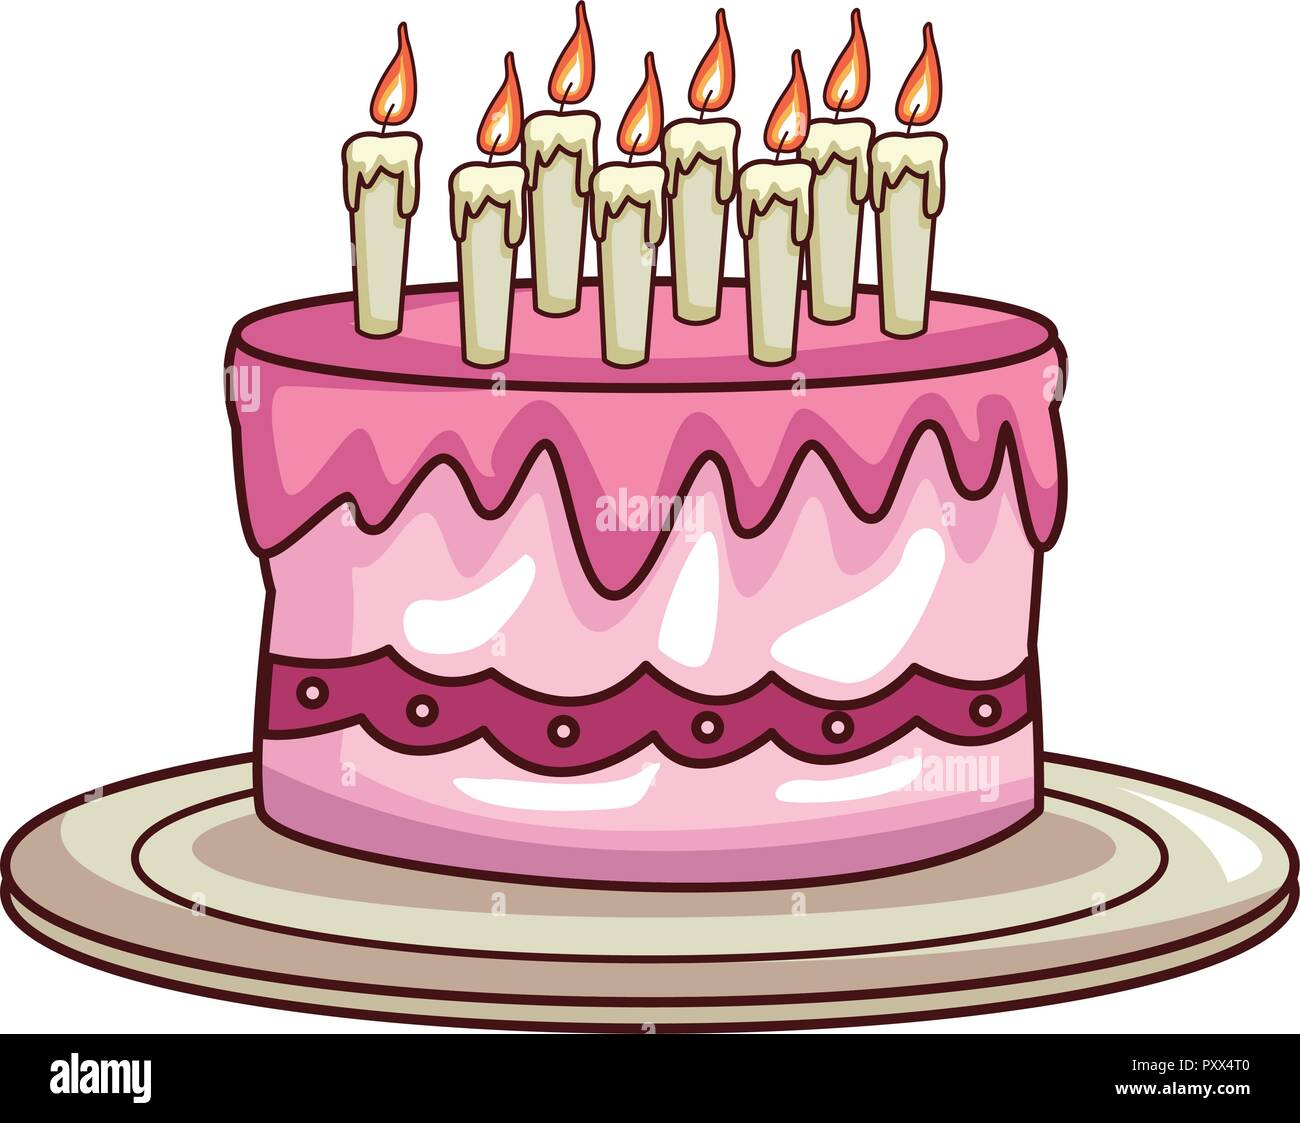 Wondrous Birthday Cake Cartoon Stock Vector Art Illustration Vector Funny Birthday Cards Online Elaedamsfinfo